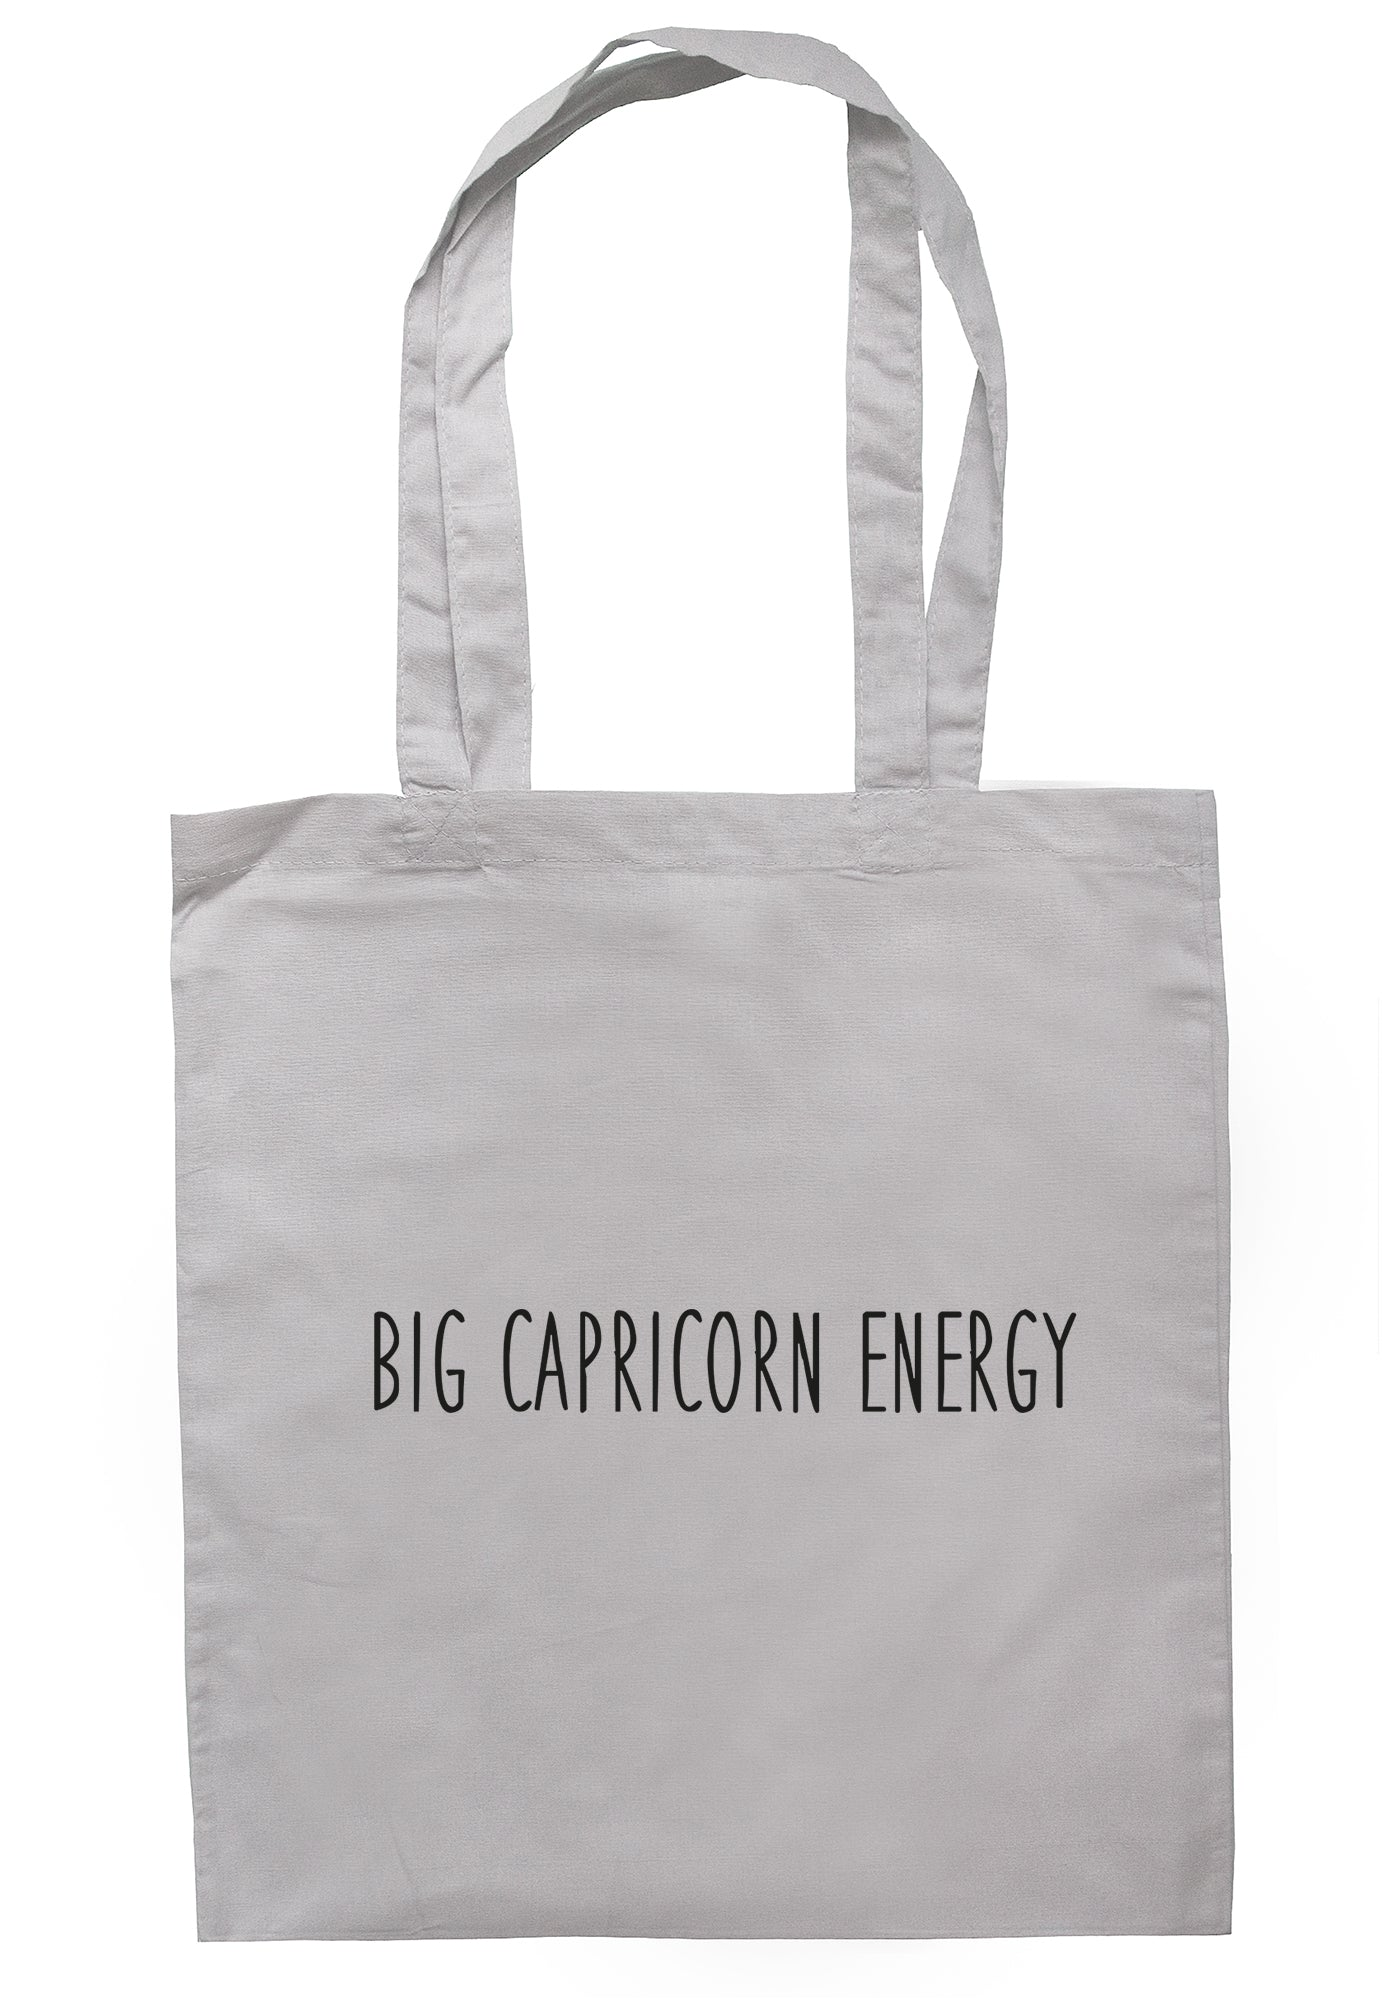 Big Capricorn Energy Tote Bag S1019 - Illustrated Identity Ltd.